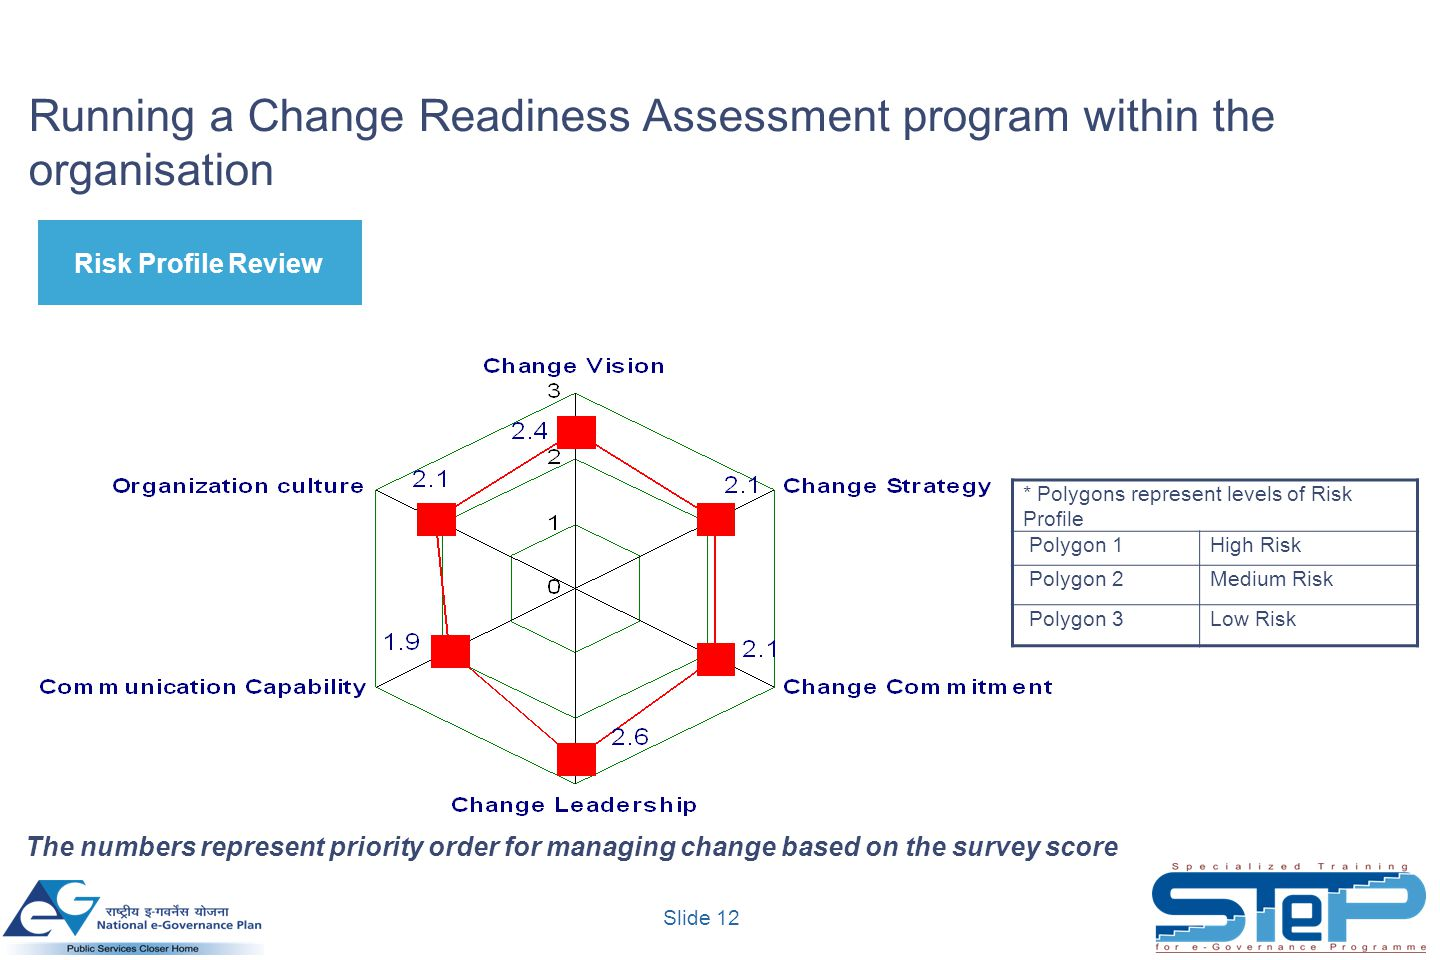 Running a Change Readiness Assessment program within the organisation